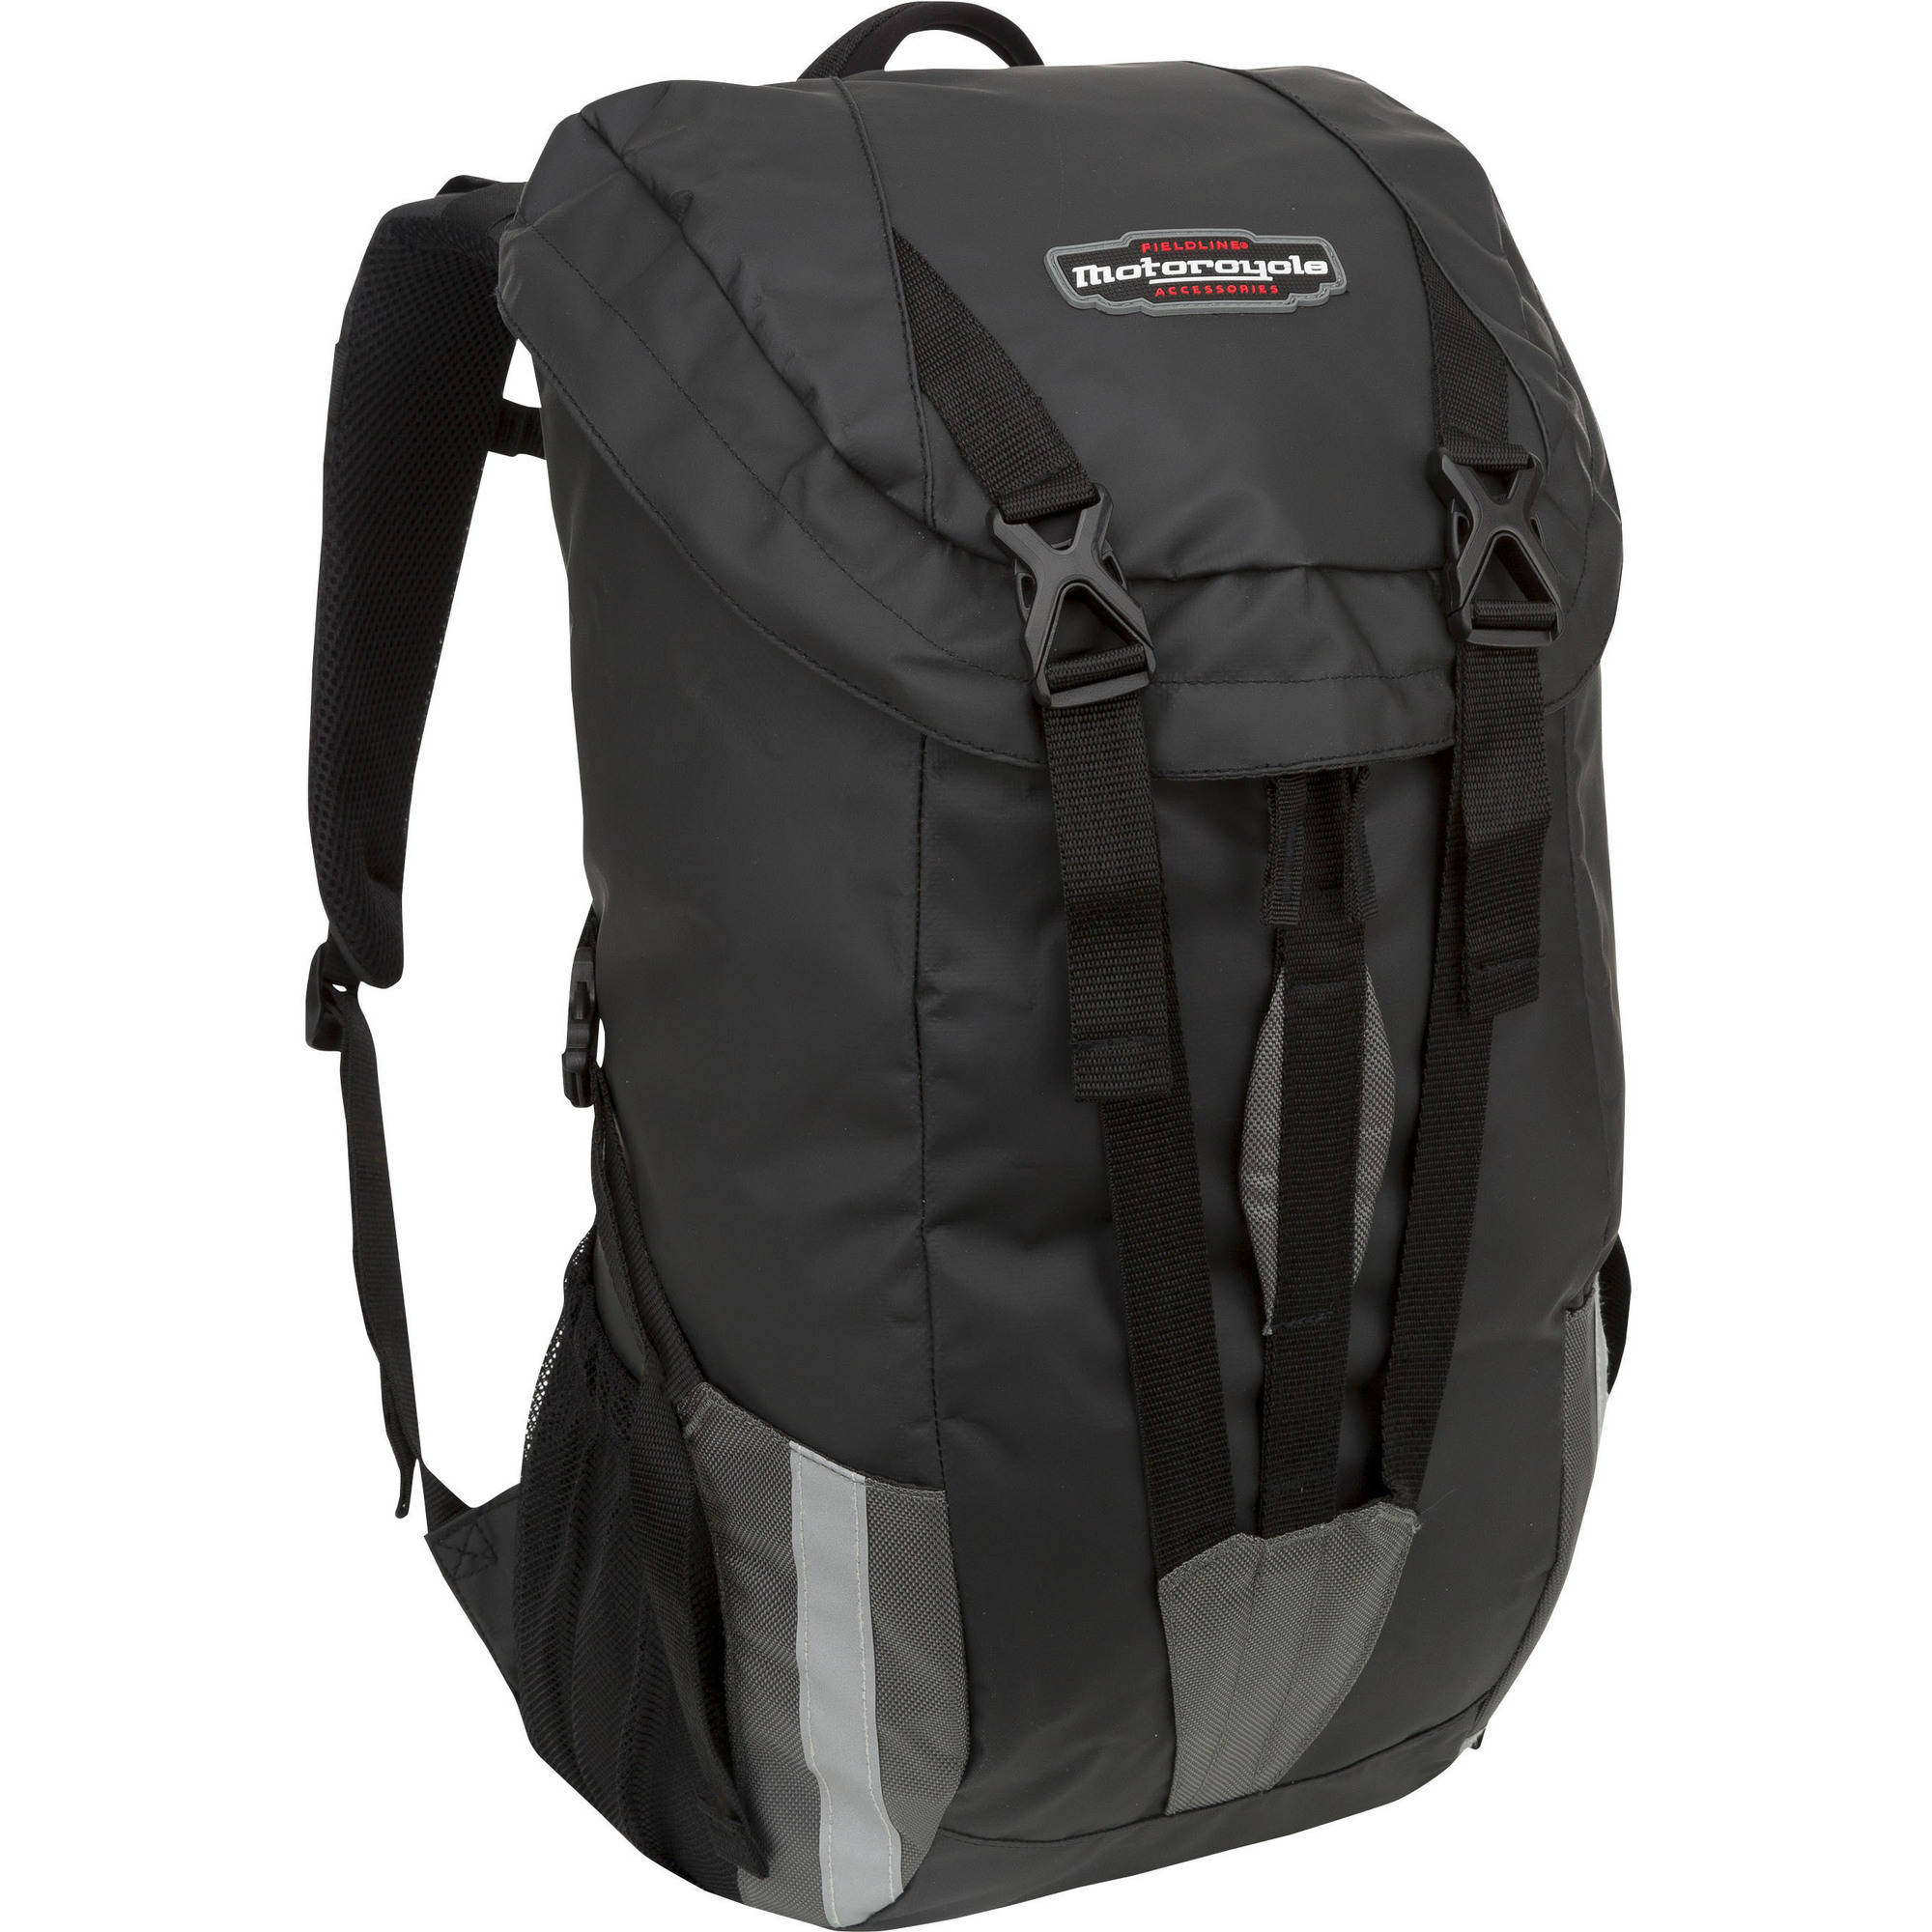 Fieldline Motorcycle All-Weather Backpack, Black